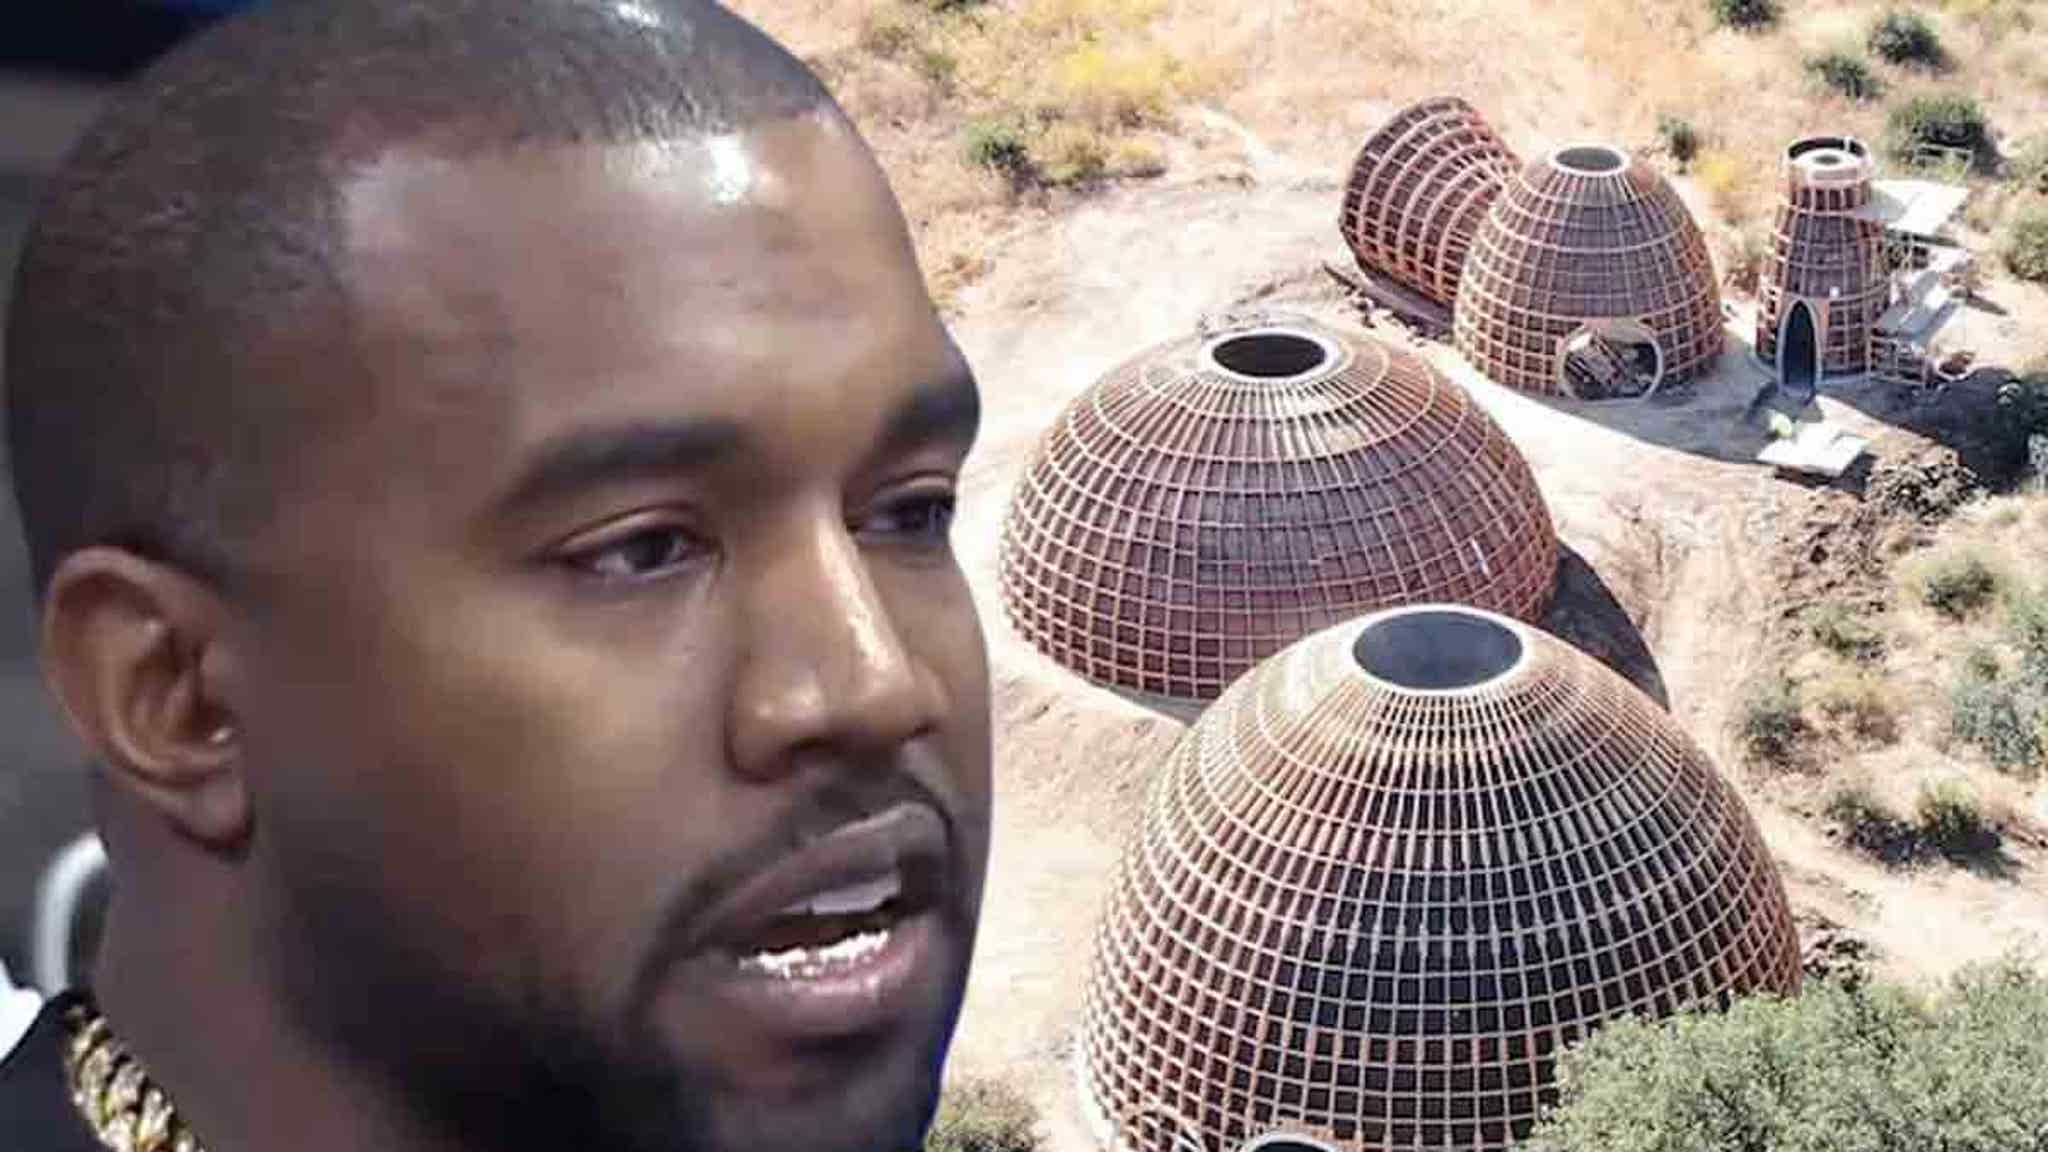 Kanye West's Neighbors Call Cops Over Sunday Construction at Dome Site